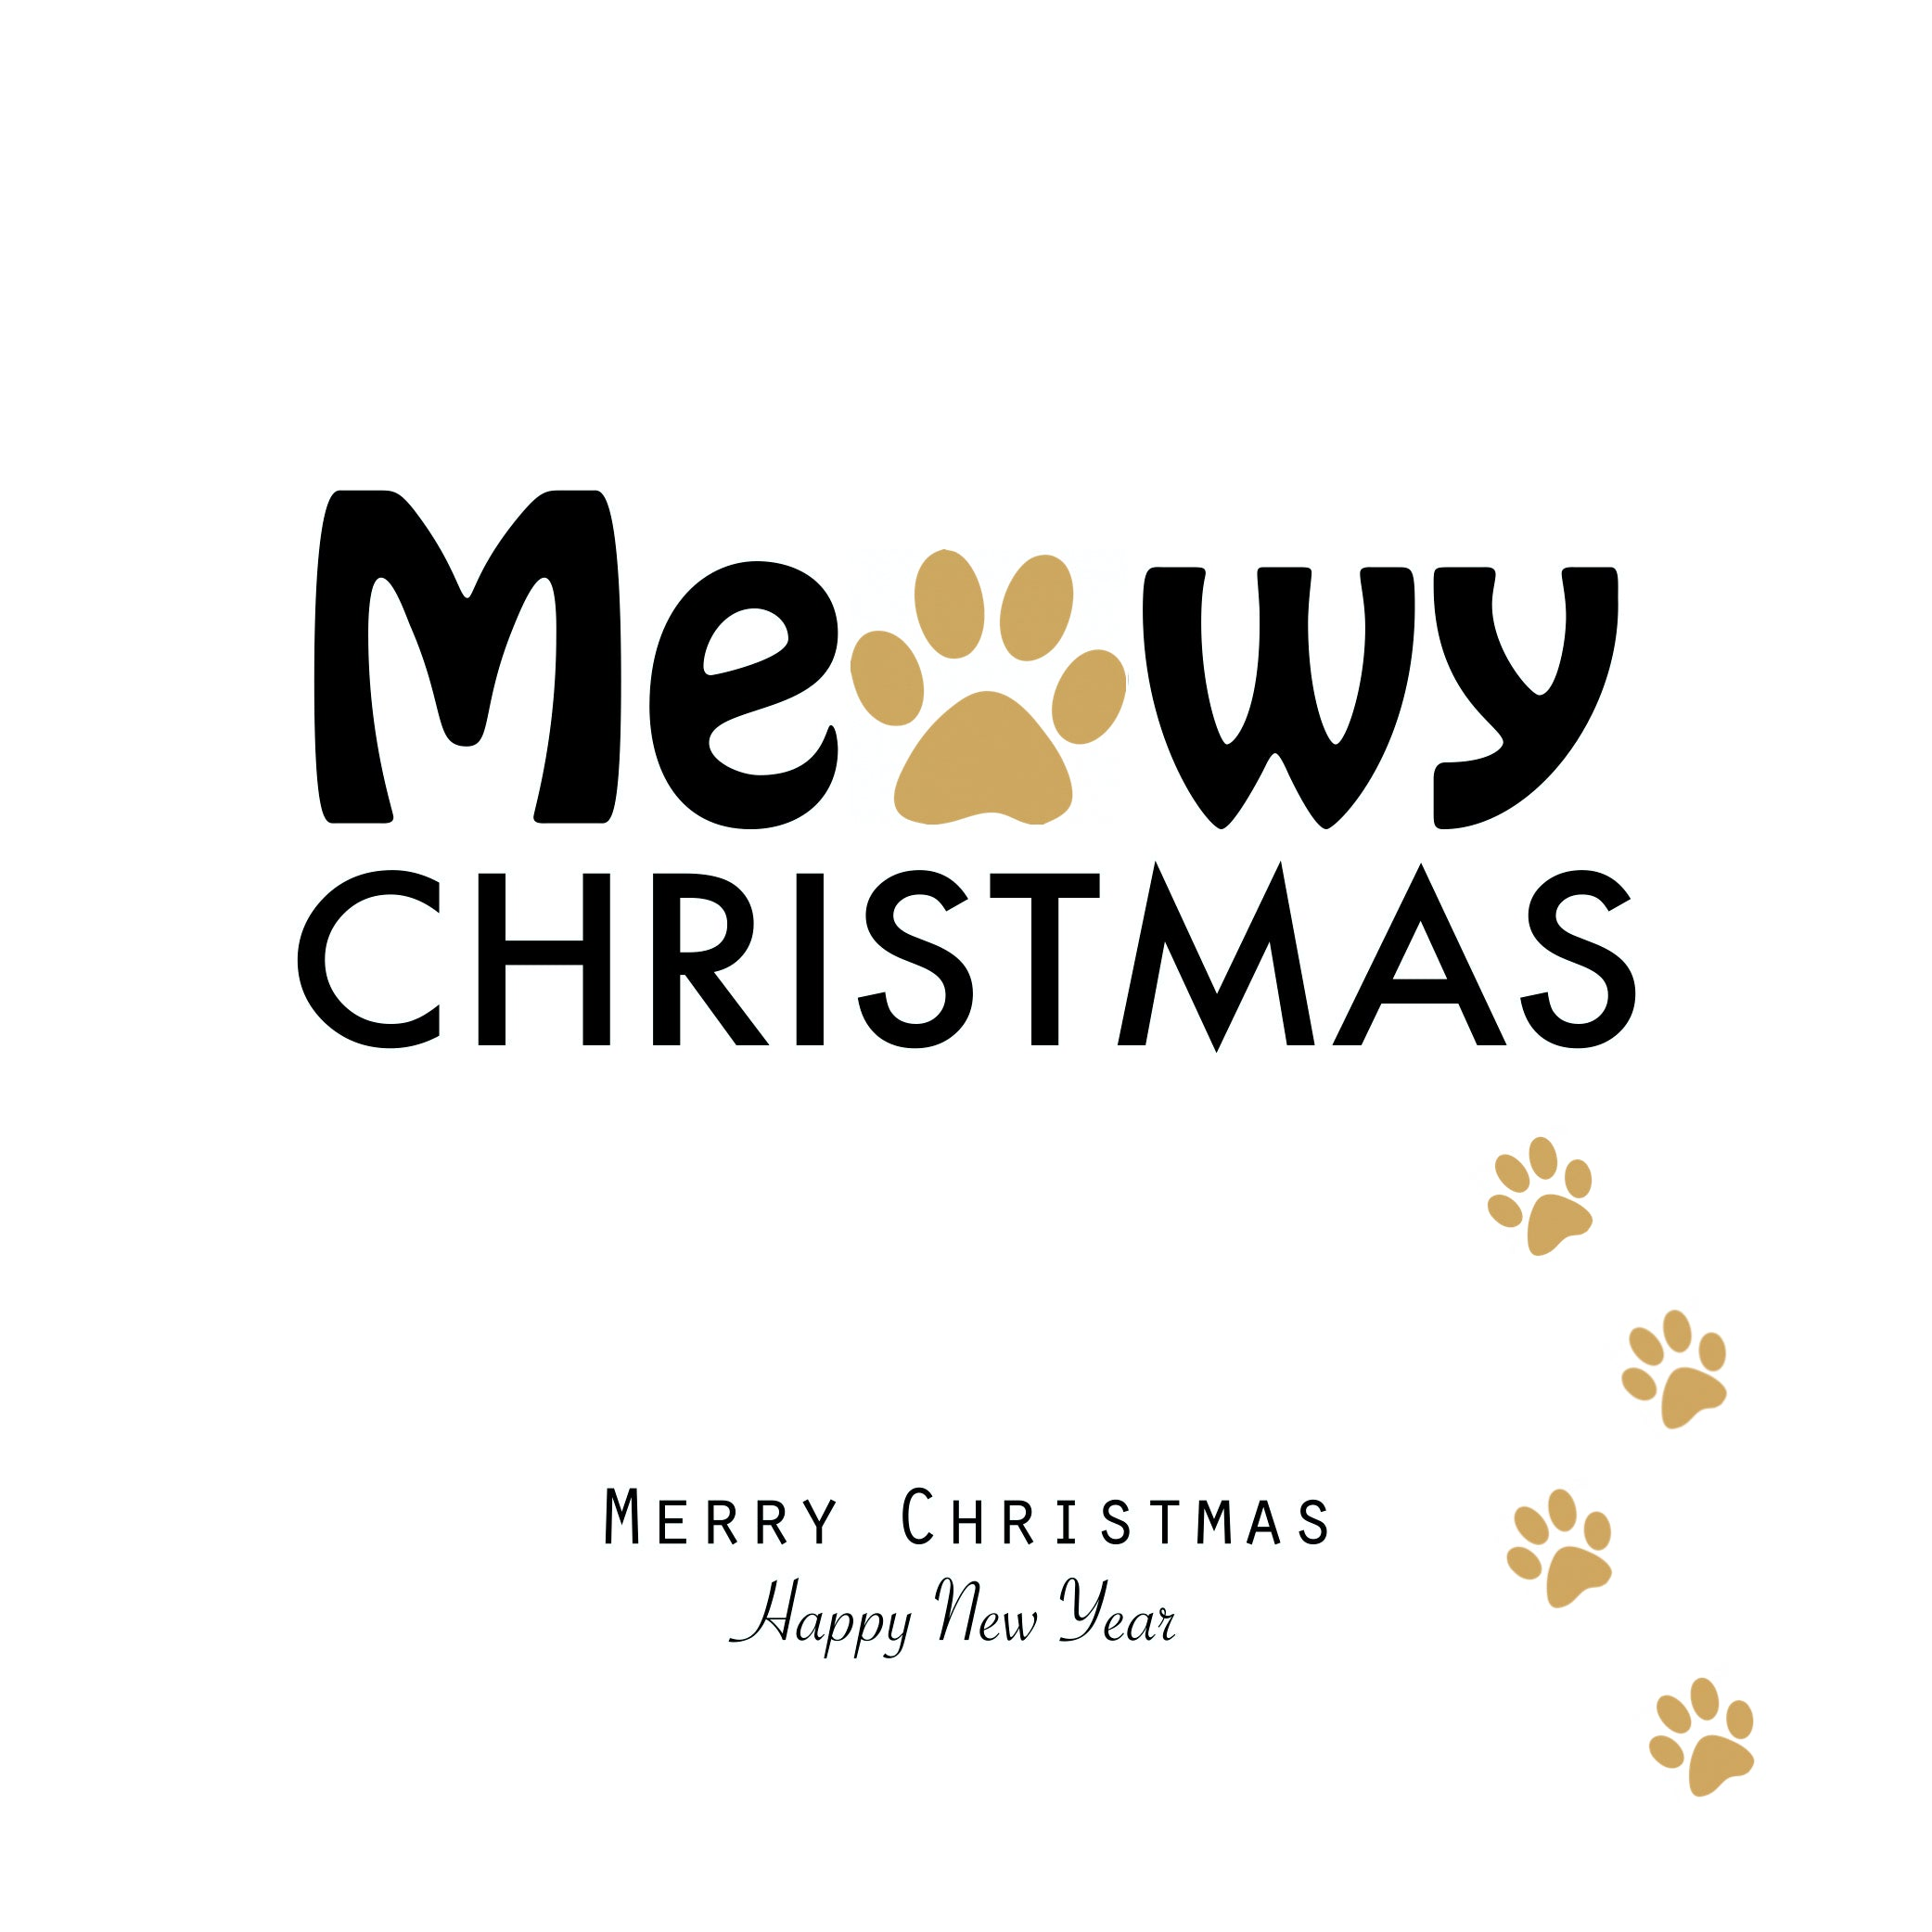 Meowy Christmas Paw Prints